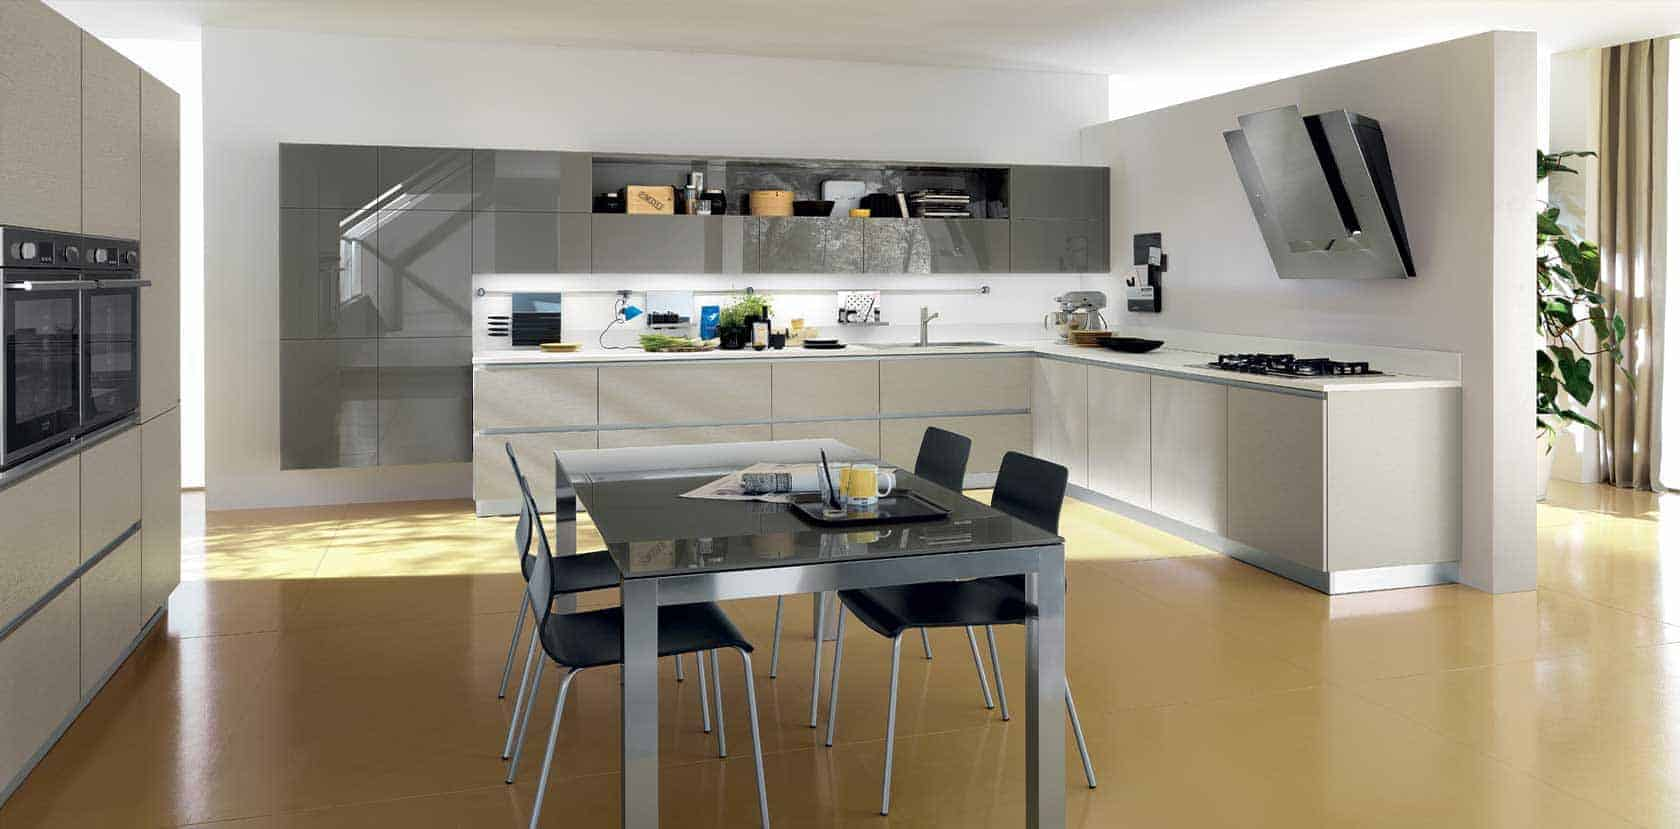 Kitchen Design Images Australia Modern Kitchens Melbourne Kitchen Mart Kitchen Renovations